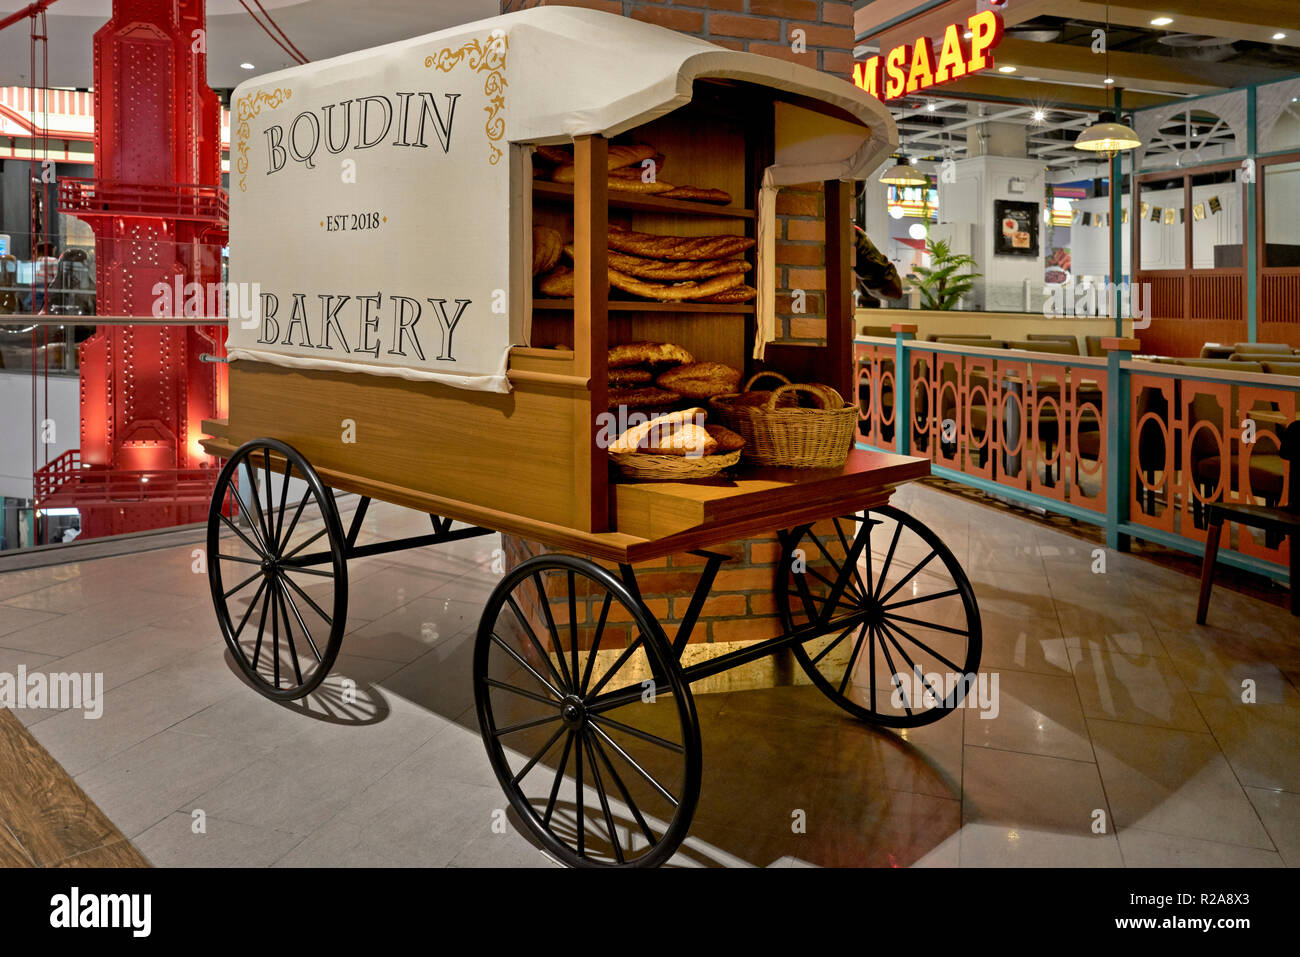 Replica vintage bakery and bread cart used as an advertising prop for artisan bakery shop. - Stock Image